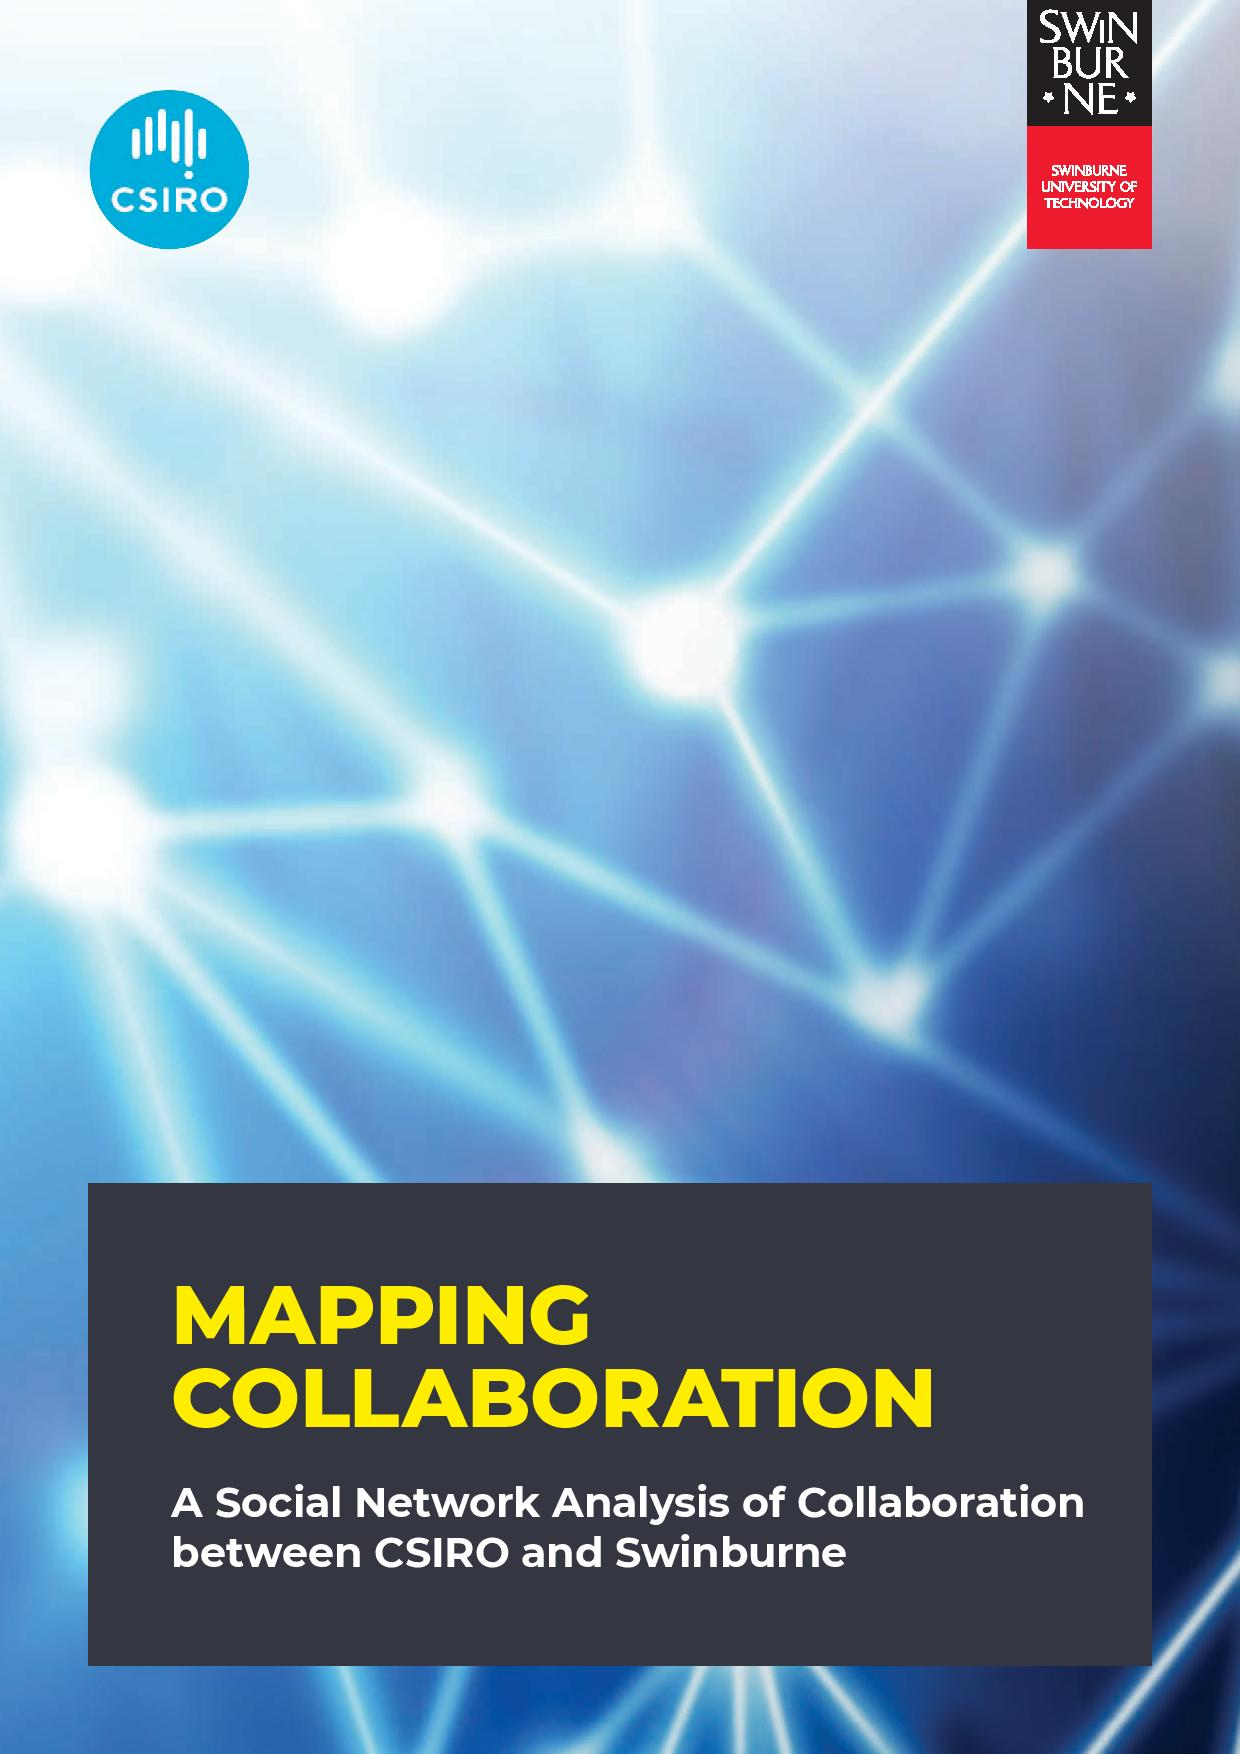 Mapping Collaboration: A Social Network Analysis of Collaboration between CSIRO and Swinburne